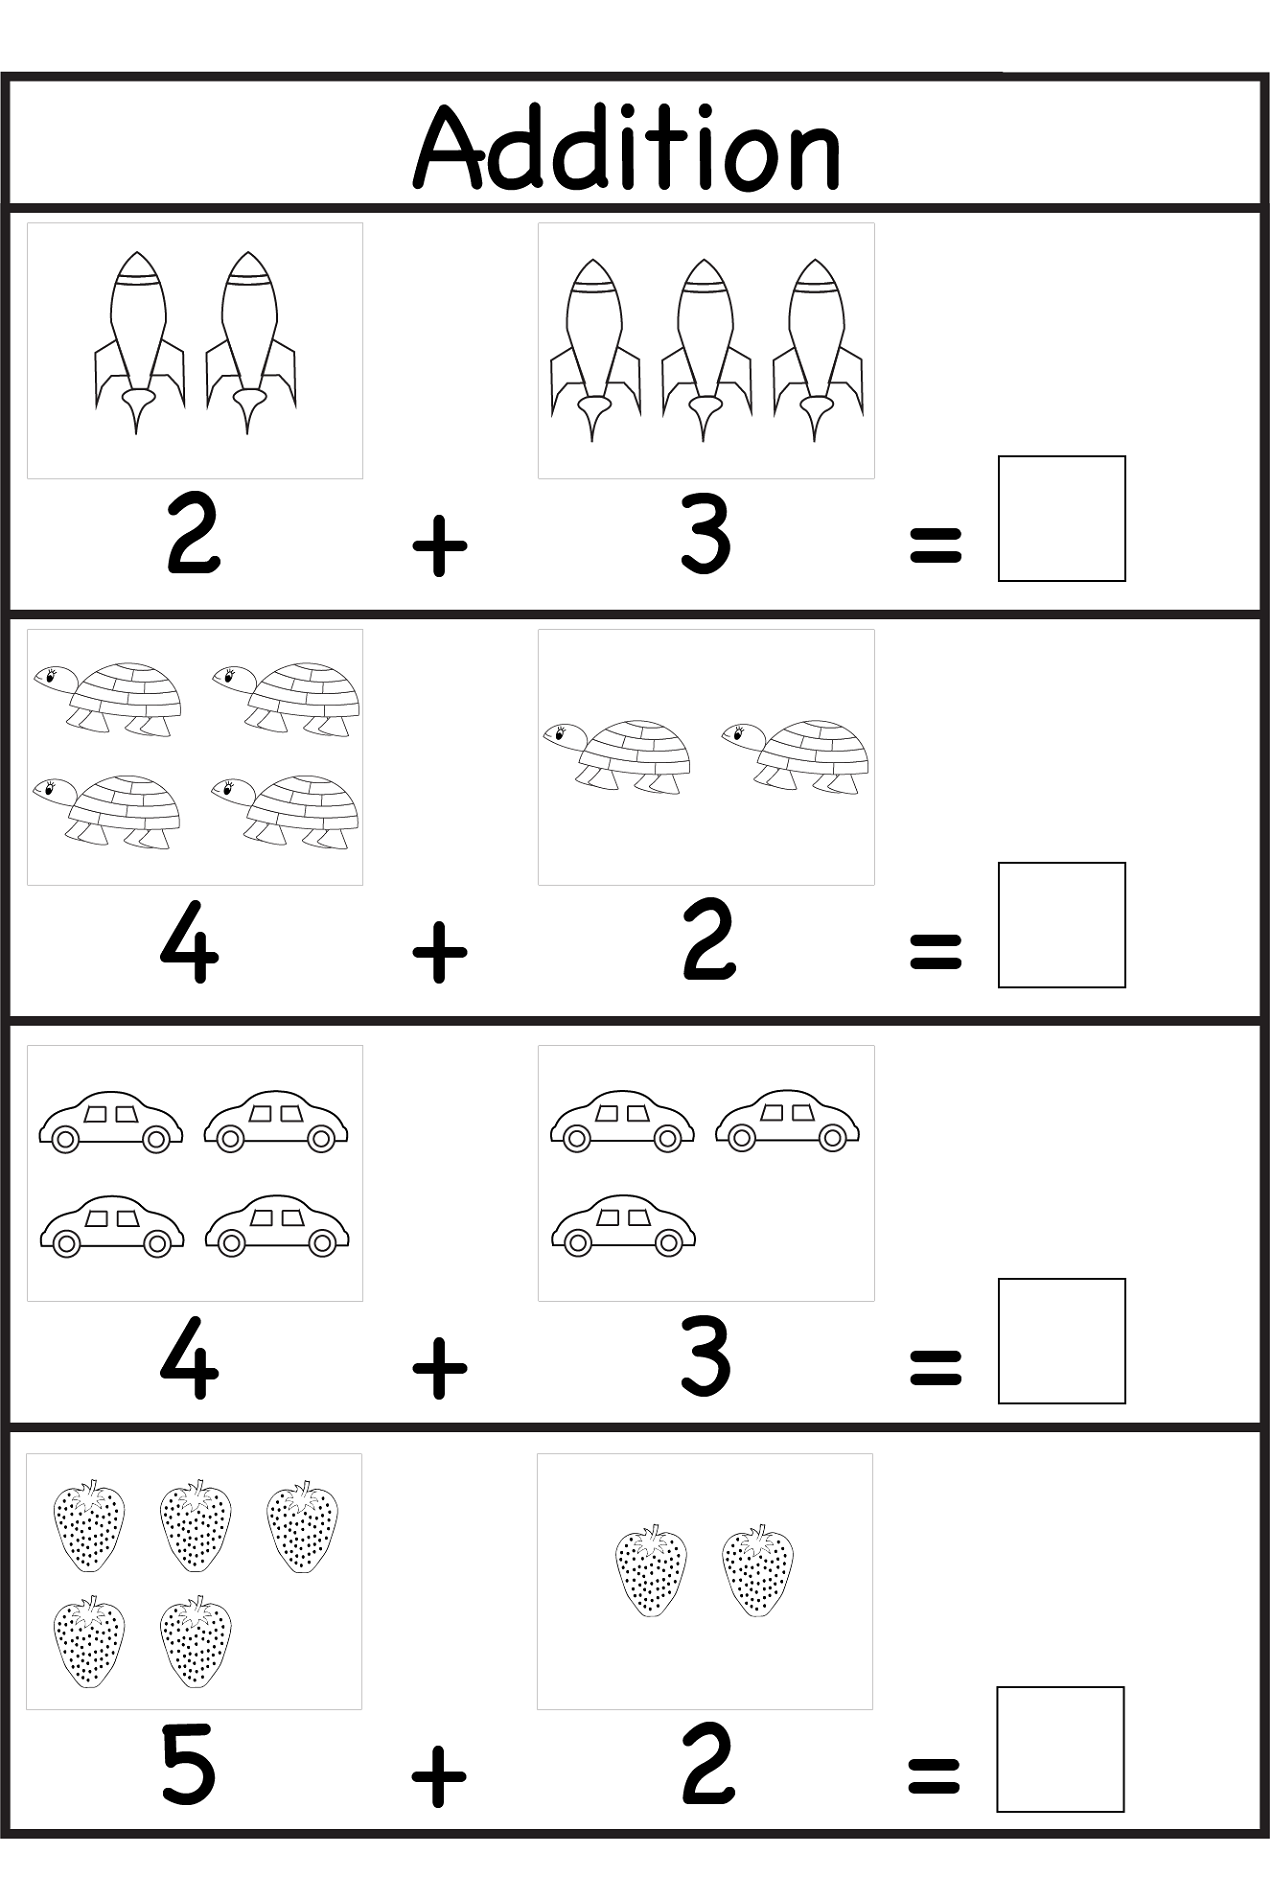 Free Worksheets For 3 Year Olds Delibertad – Math Worksheets for 3 Year Olds